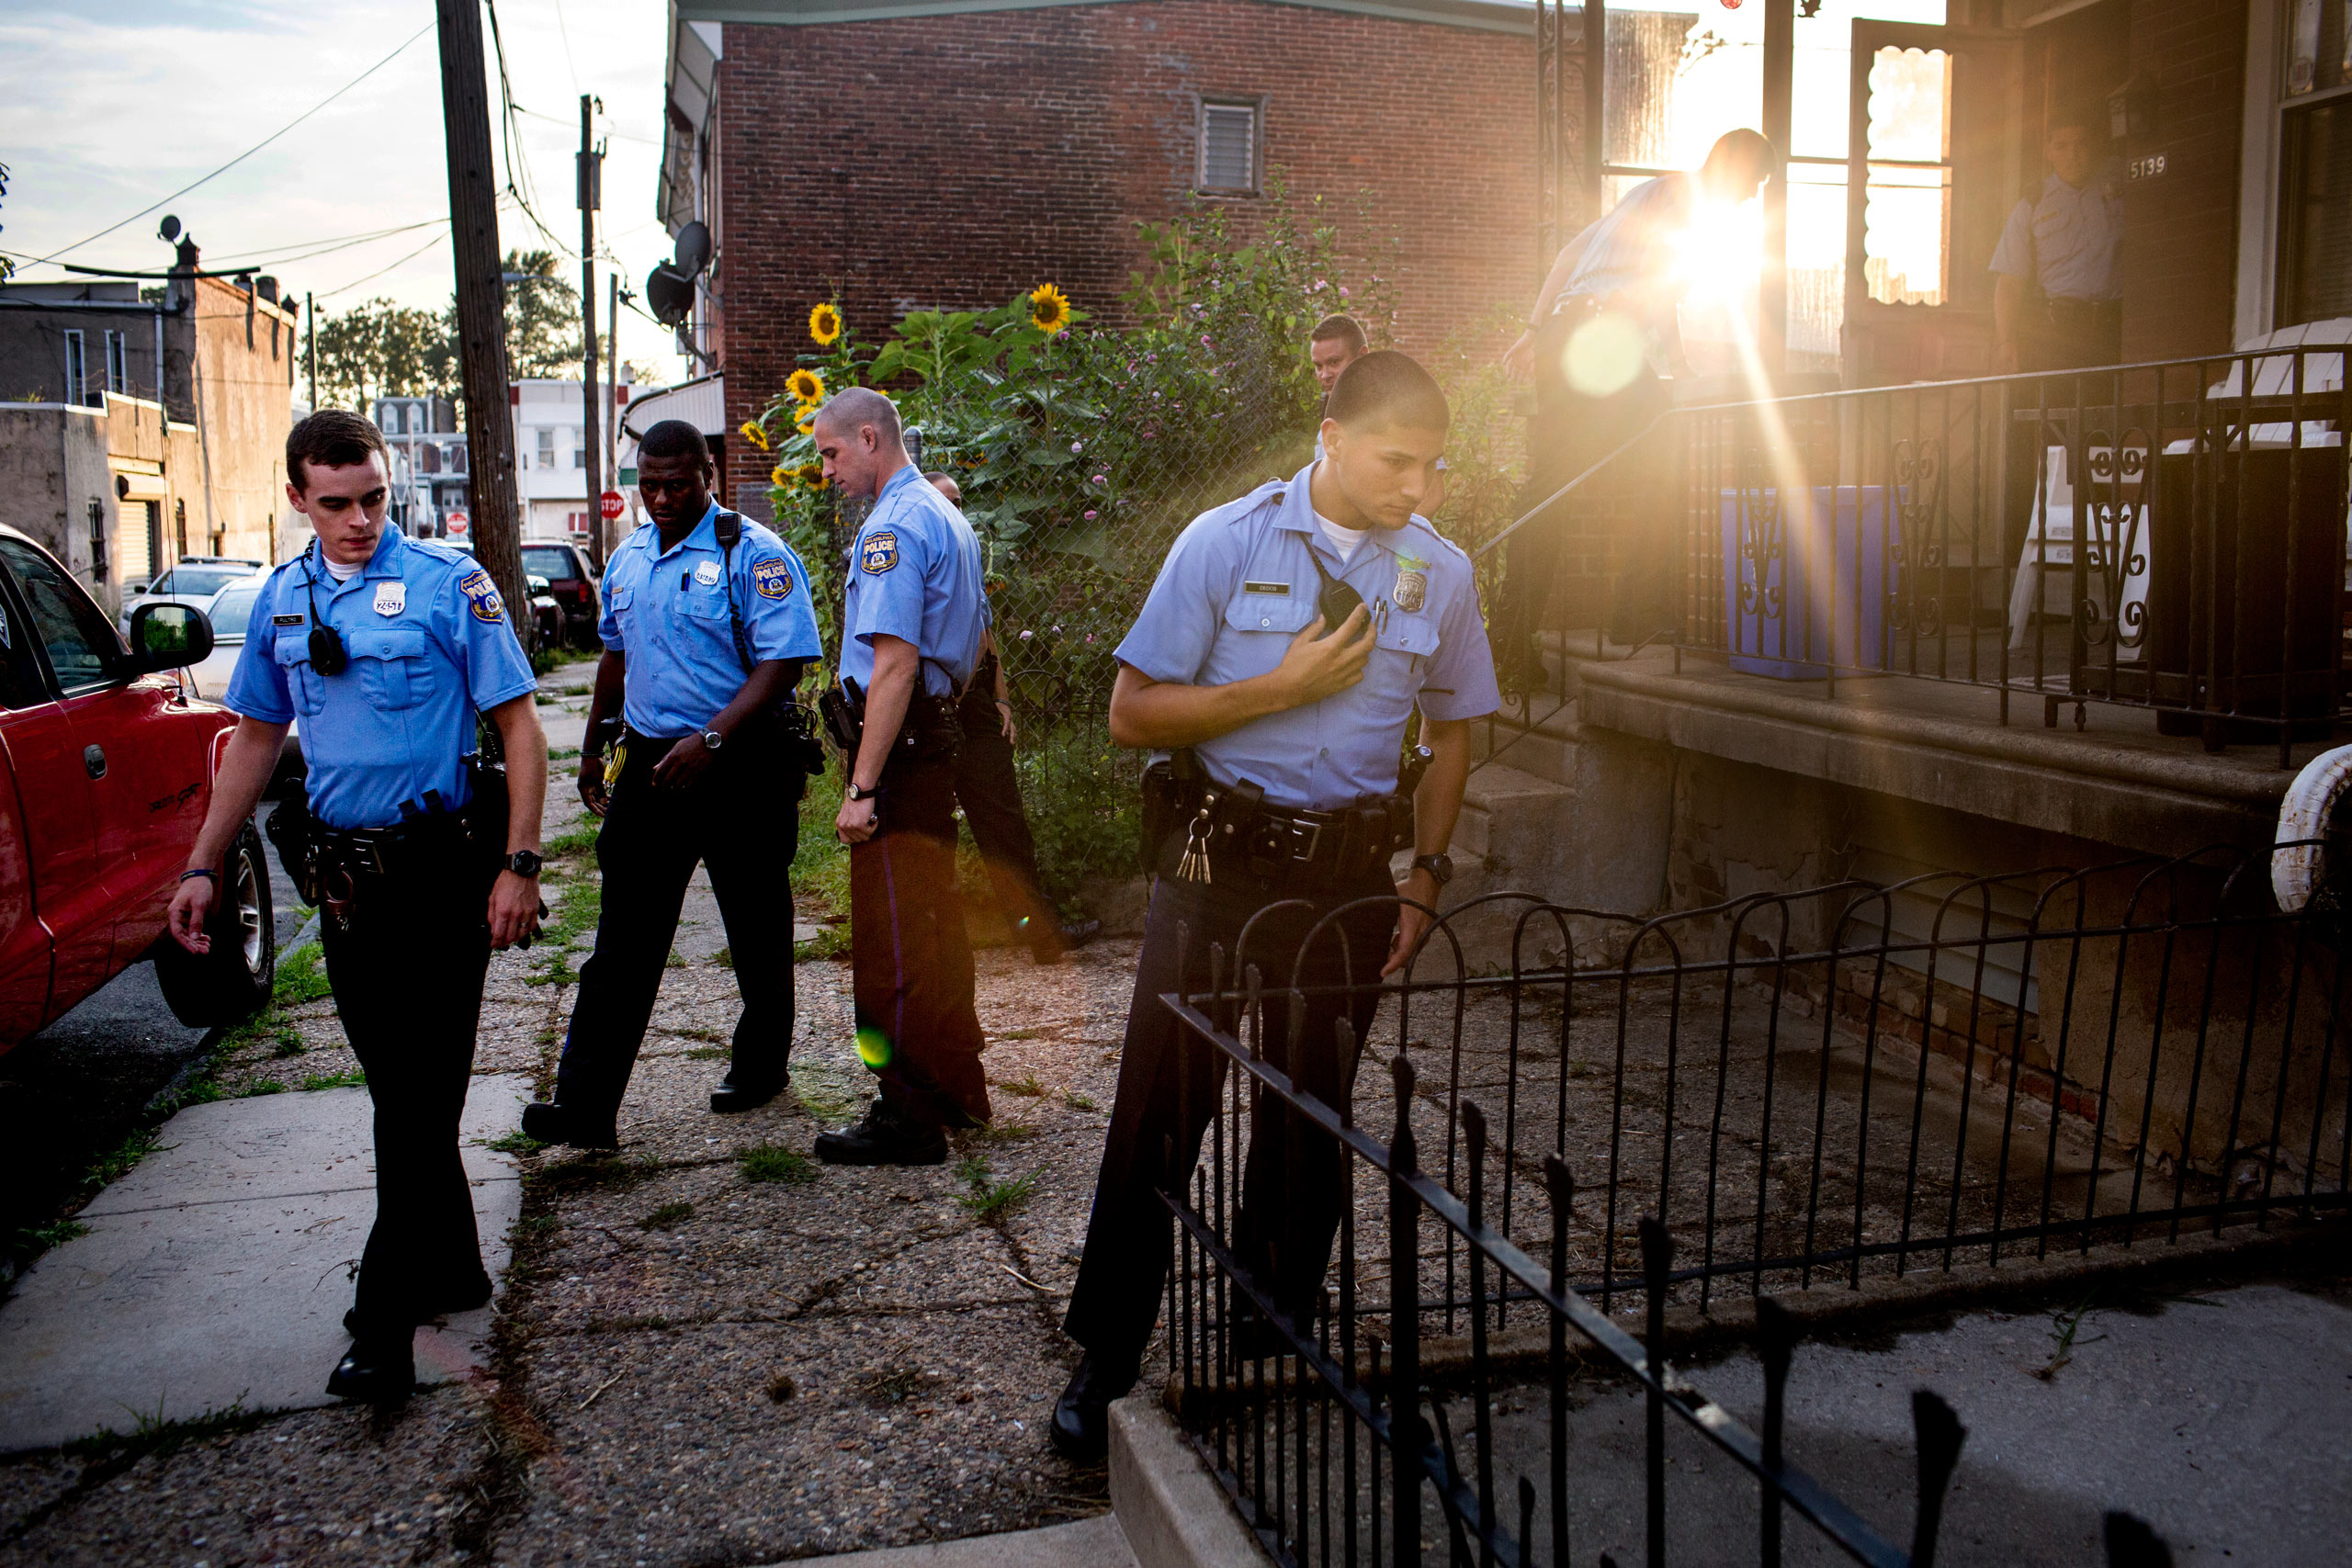 Officers search the scene for shell casings after reports of a man shooting off a shotgun to threaten his neighbor from his porch. As no one heard shots and there were no casings, police suspected the man had brandished the weapon but not fired it. July 30, 2015. Philadelphia, Pa.